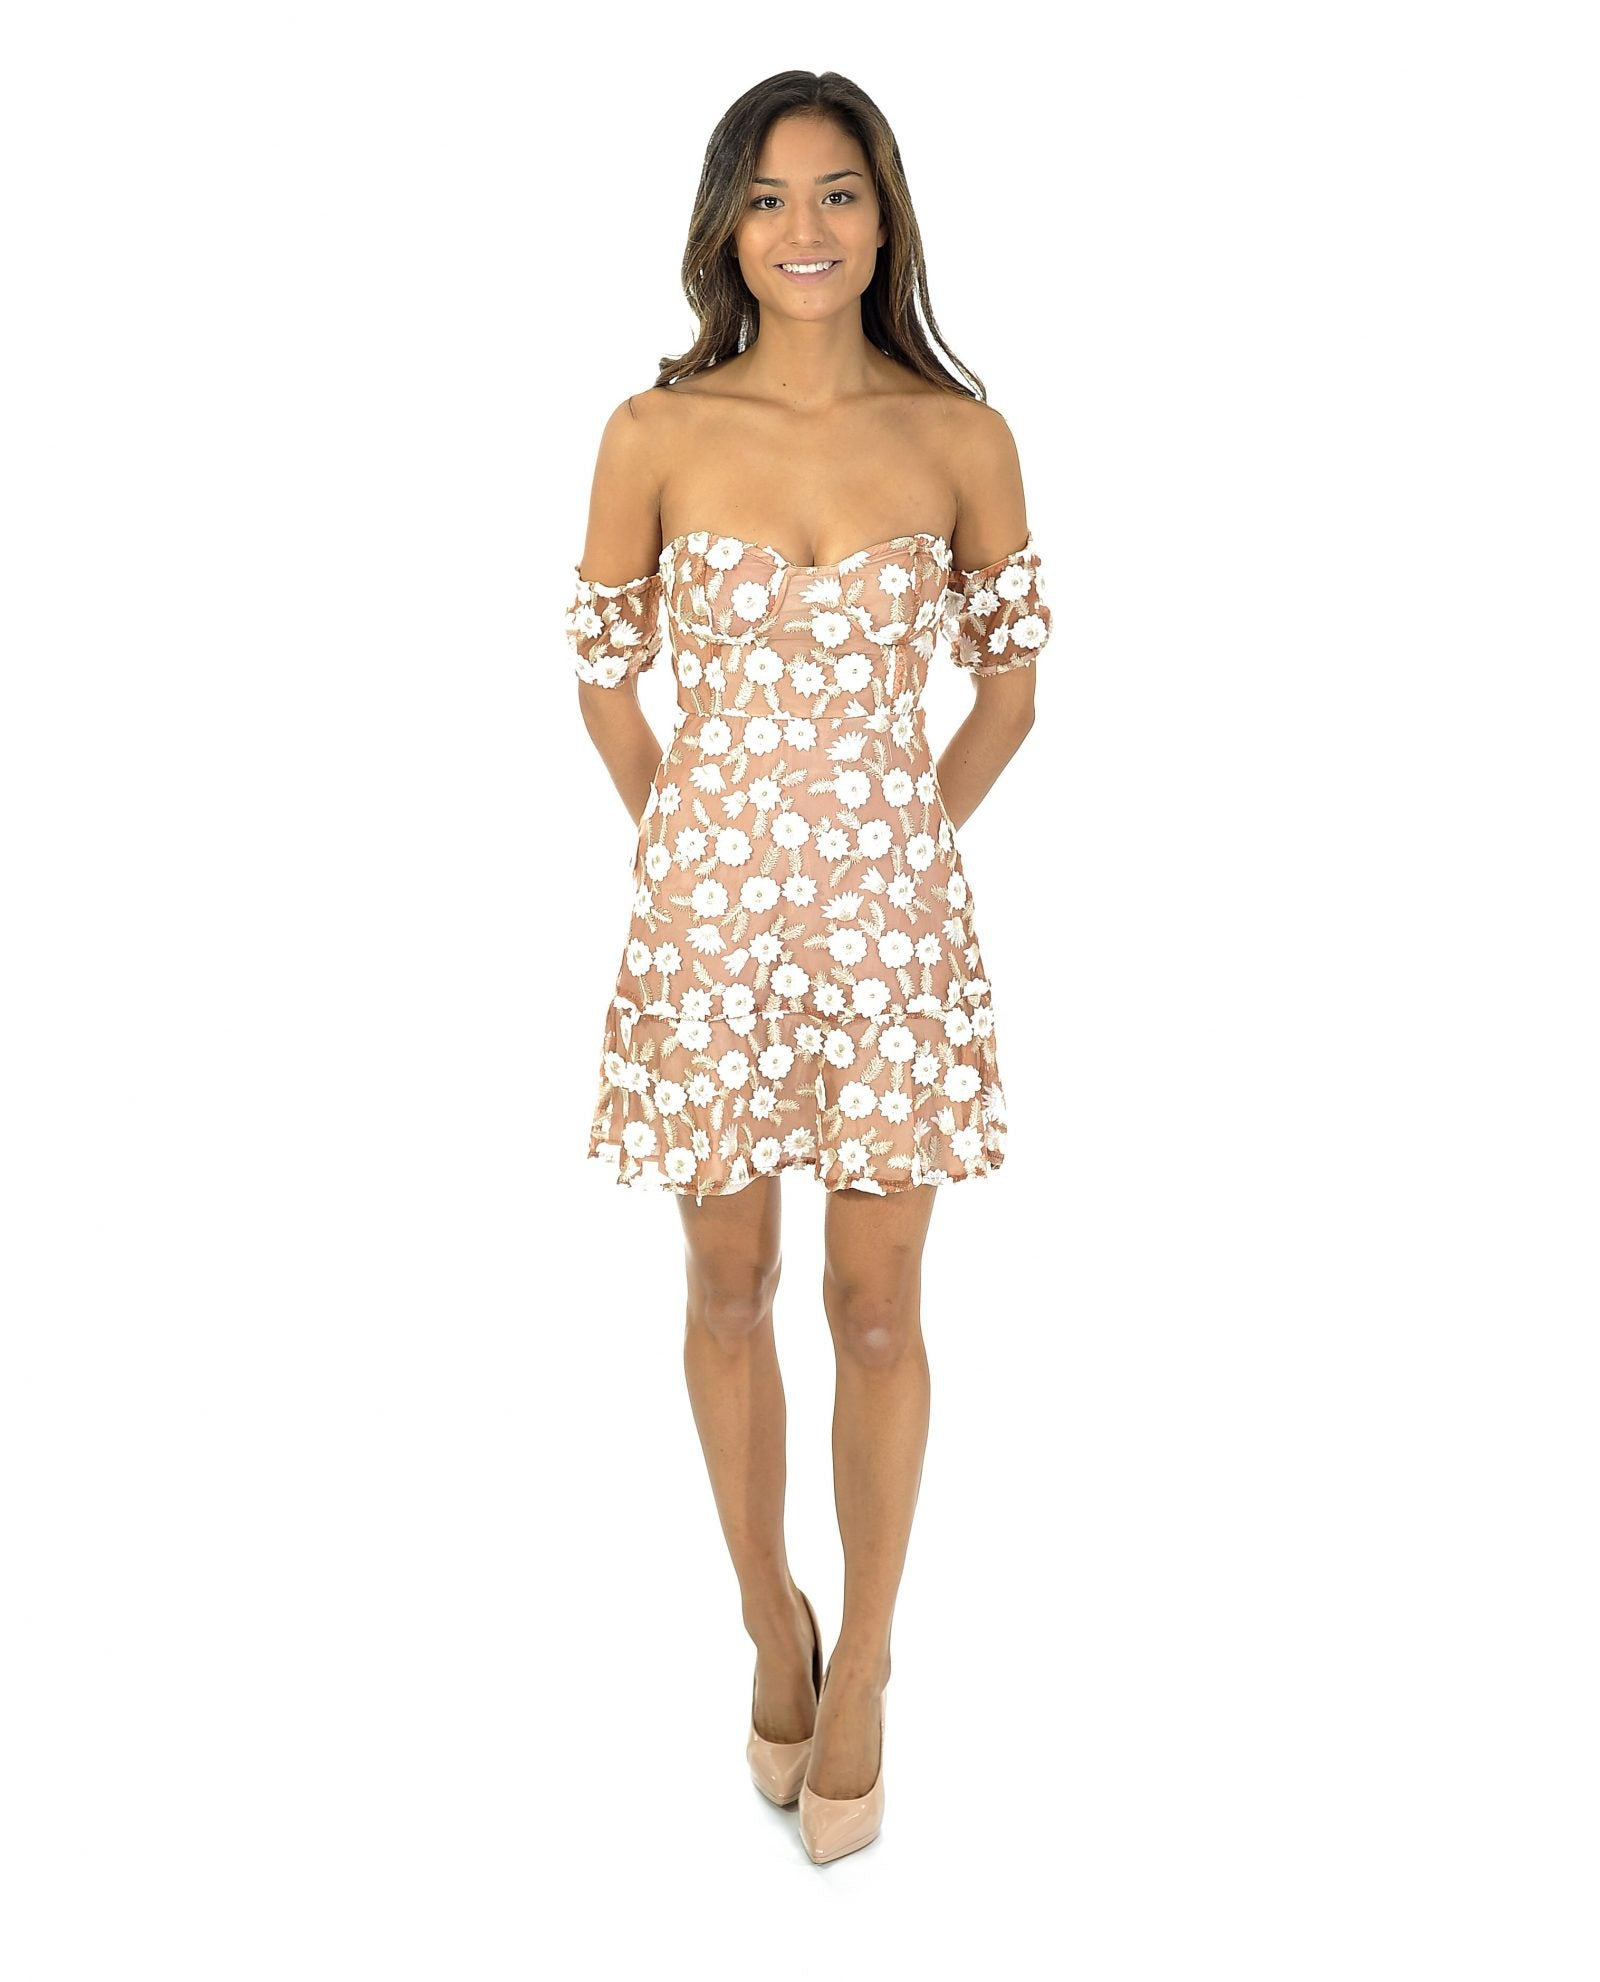 NUDE & WHITE FLORAL BANDEAU DRESS_AAA0366